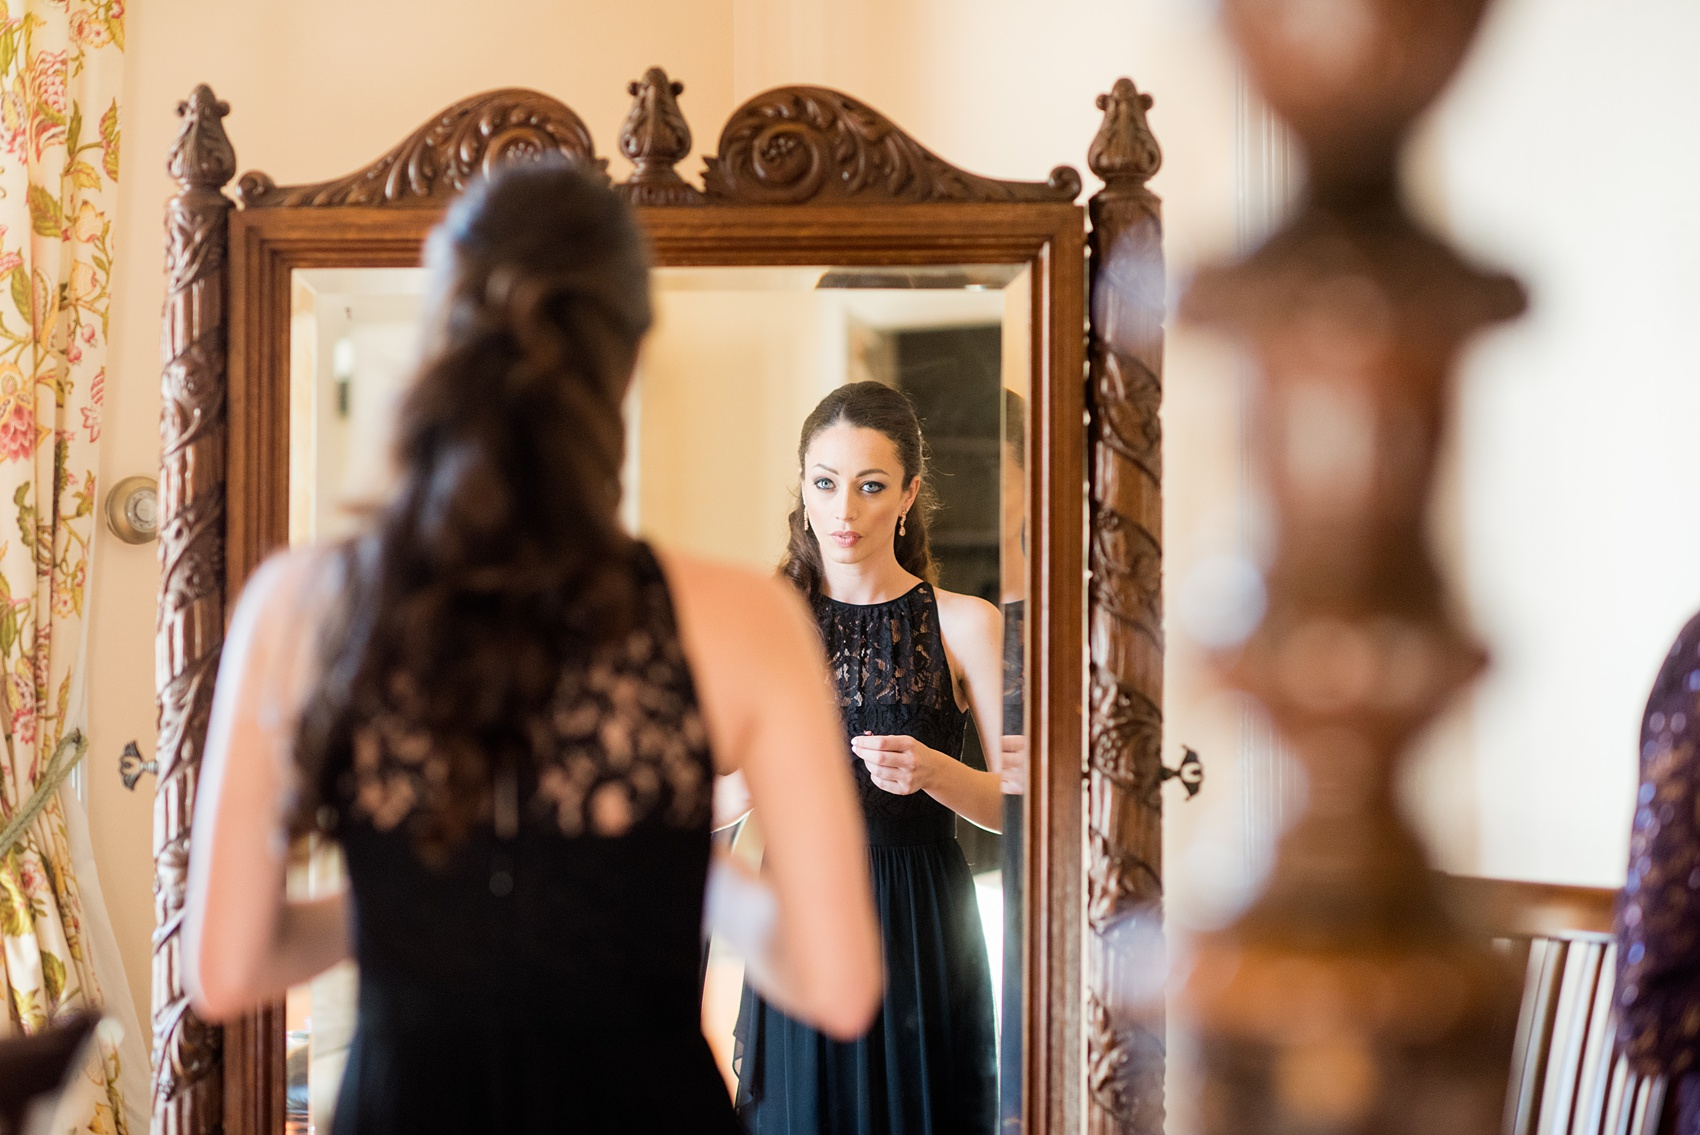 Wedding photos at Sleepy Hollow Country Club for a winter reception in January by Mikkel Paige Photography. The maid of honor looked in the mirror during getting ready pictures in her black lace gown.